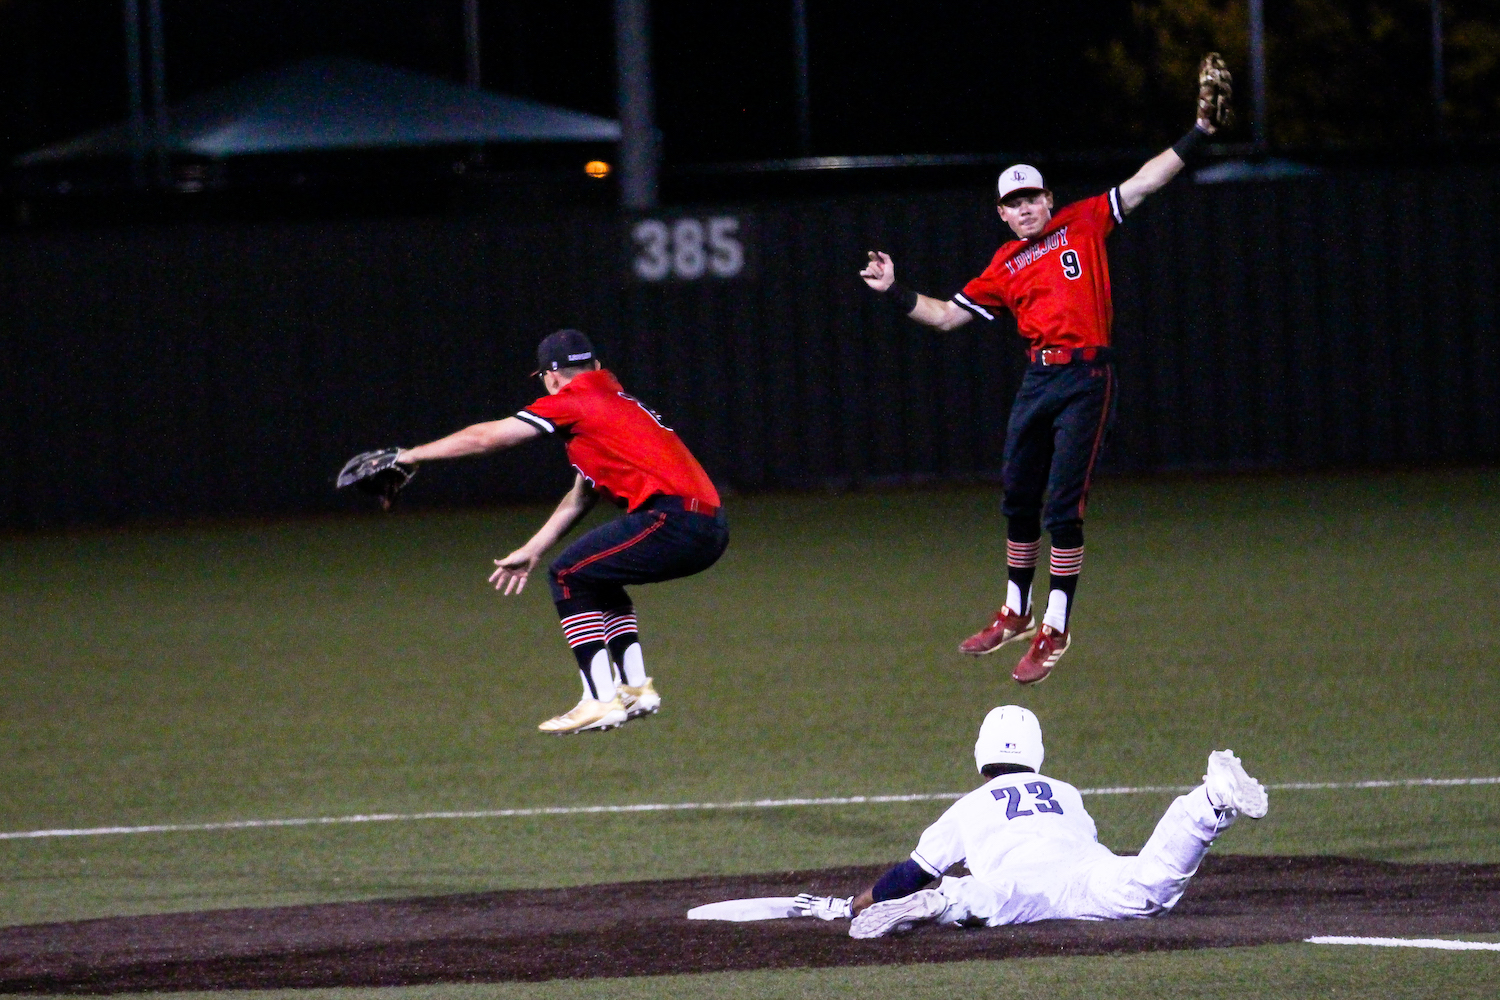 Senior+Jacob+Terwilliger+jumps+to+catch+the+ball+and+make+an+out+on+second+base.